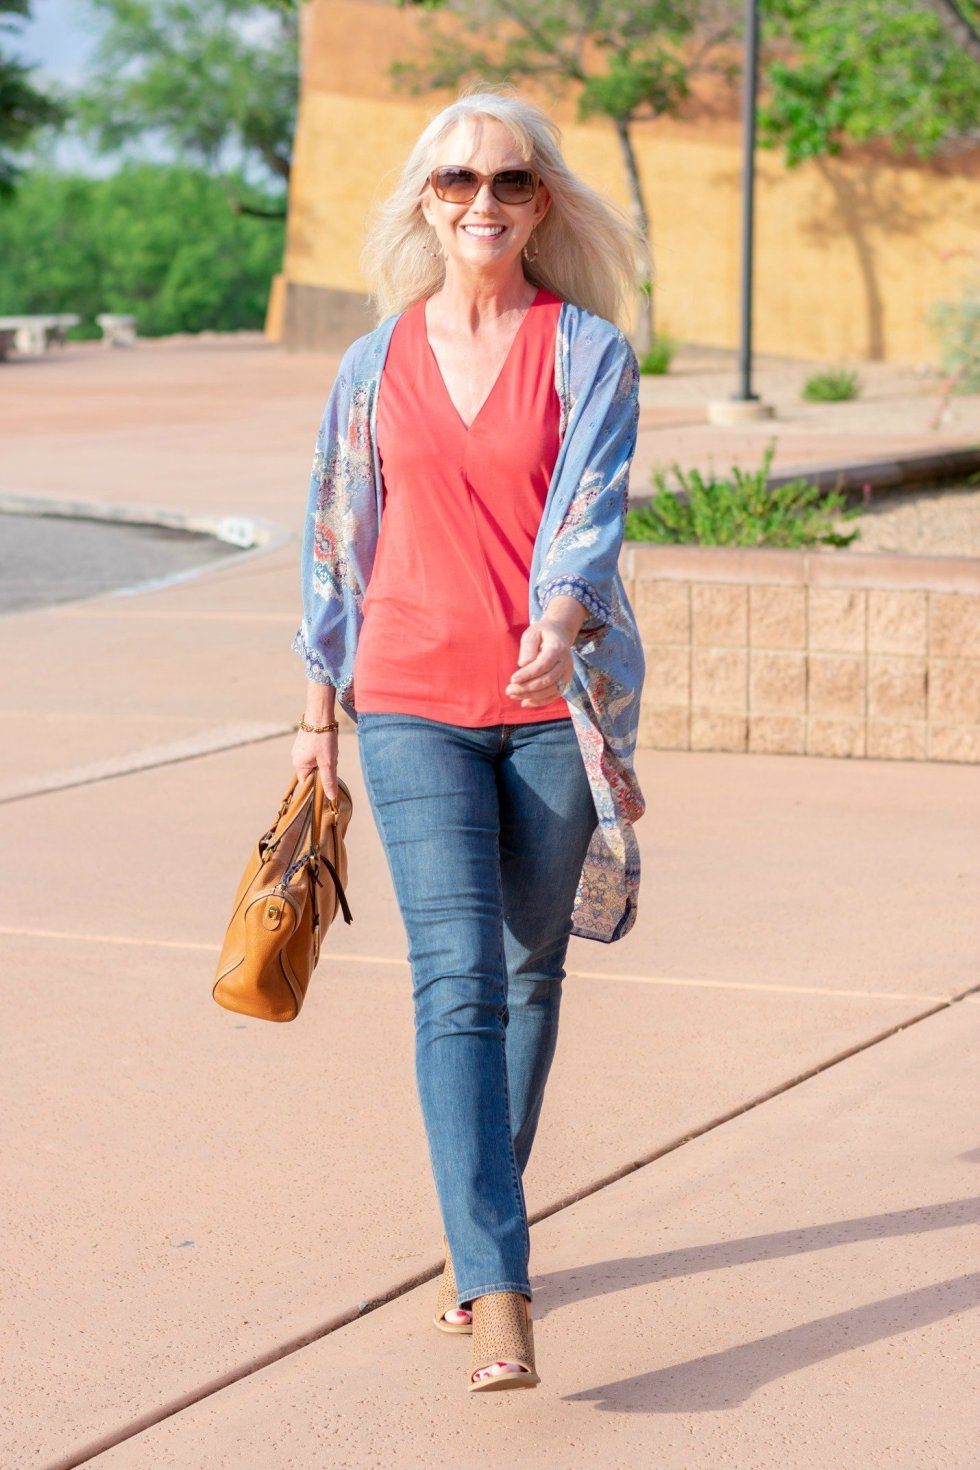 kimono and jeans to transition into fall